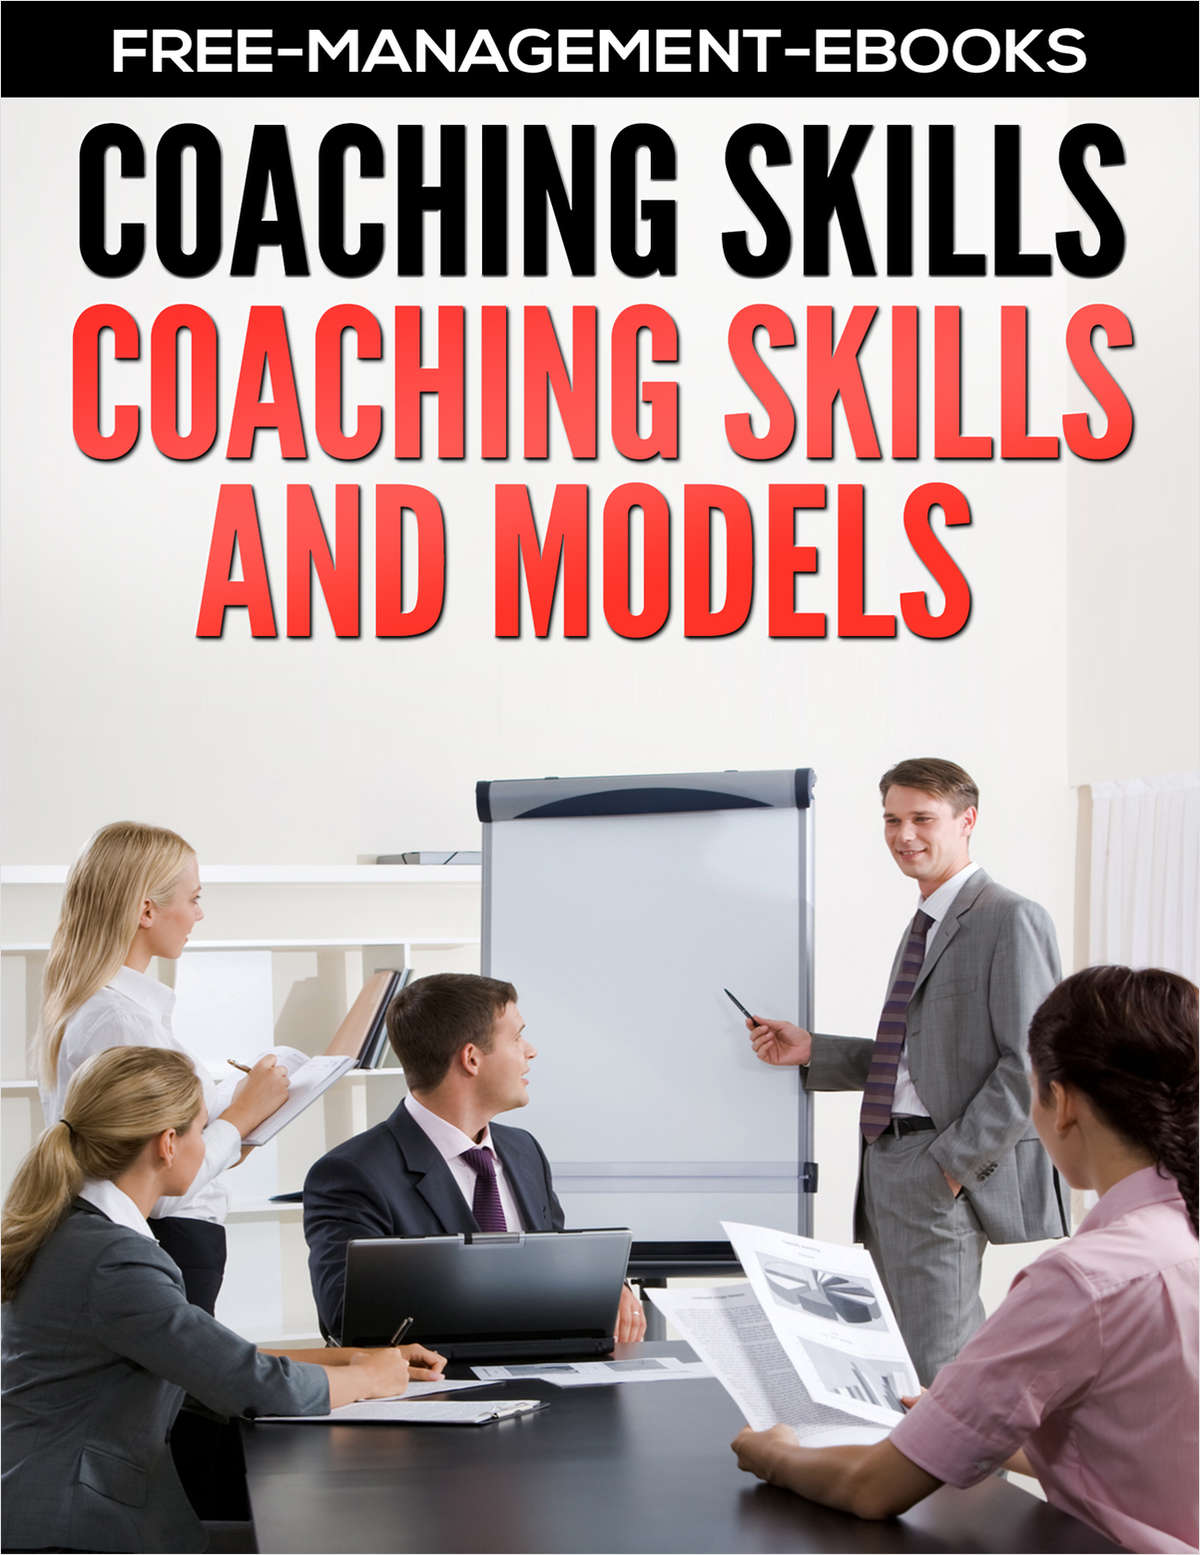 Coaching Skills and Models -- Developing your Coaching Skills